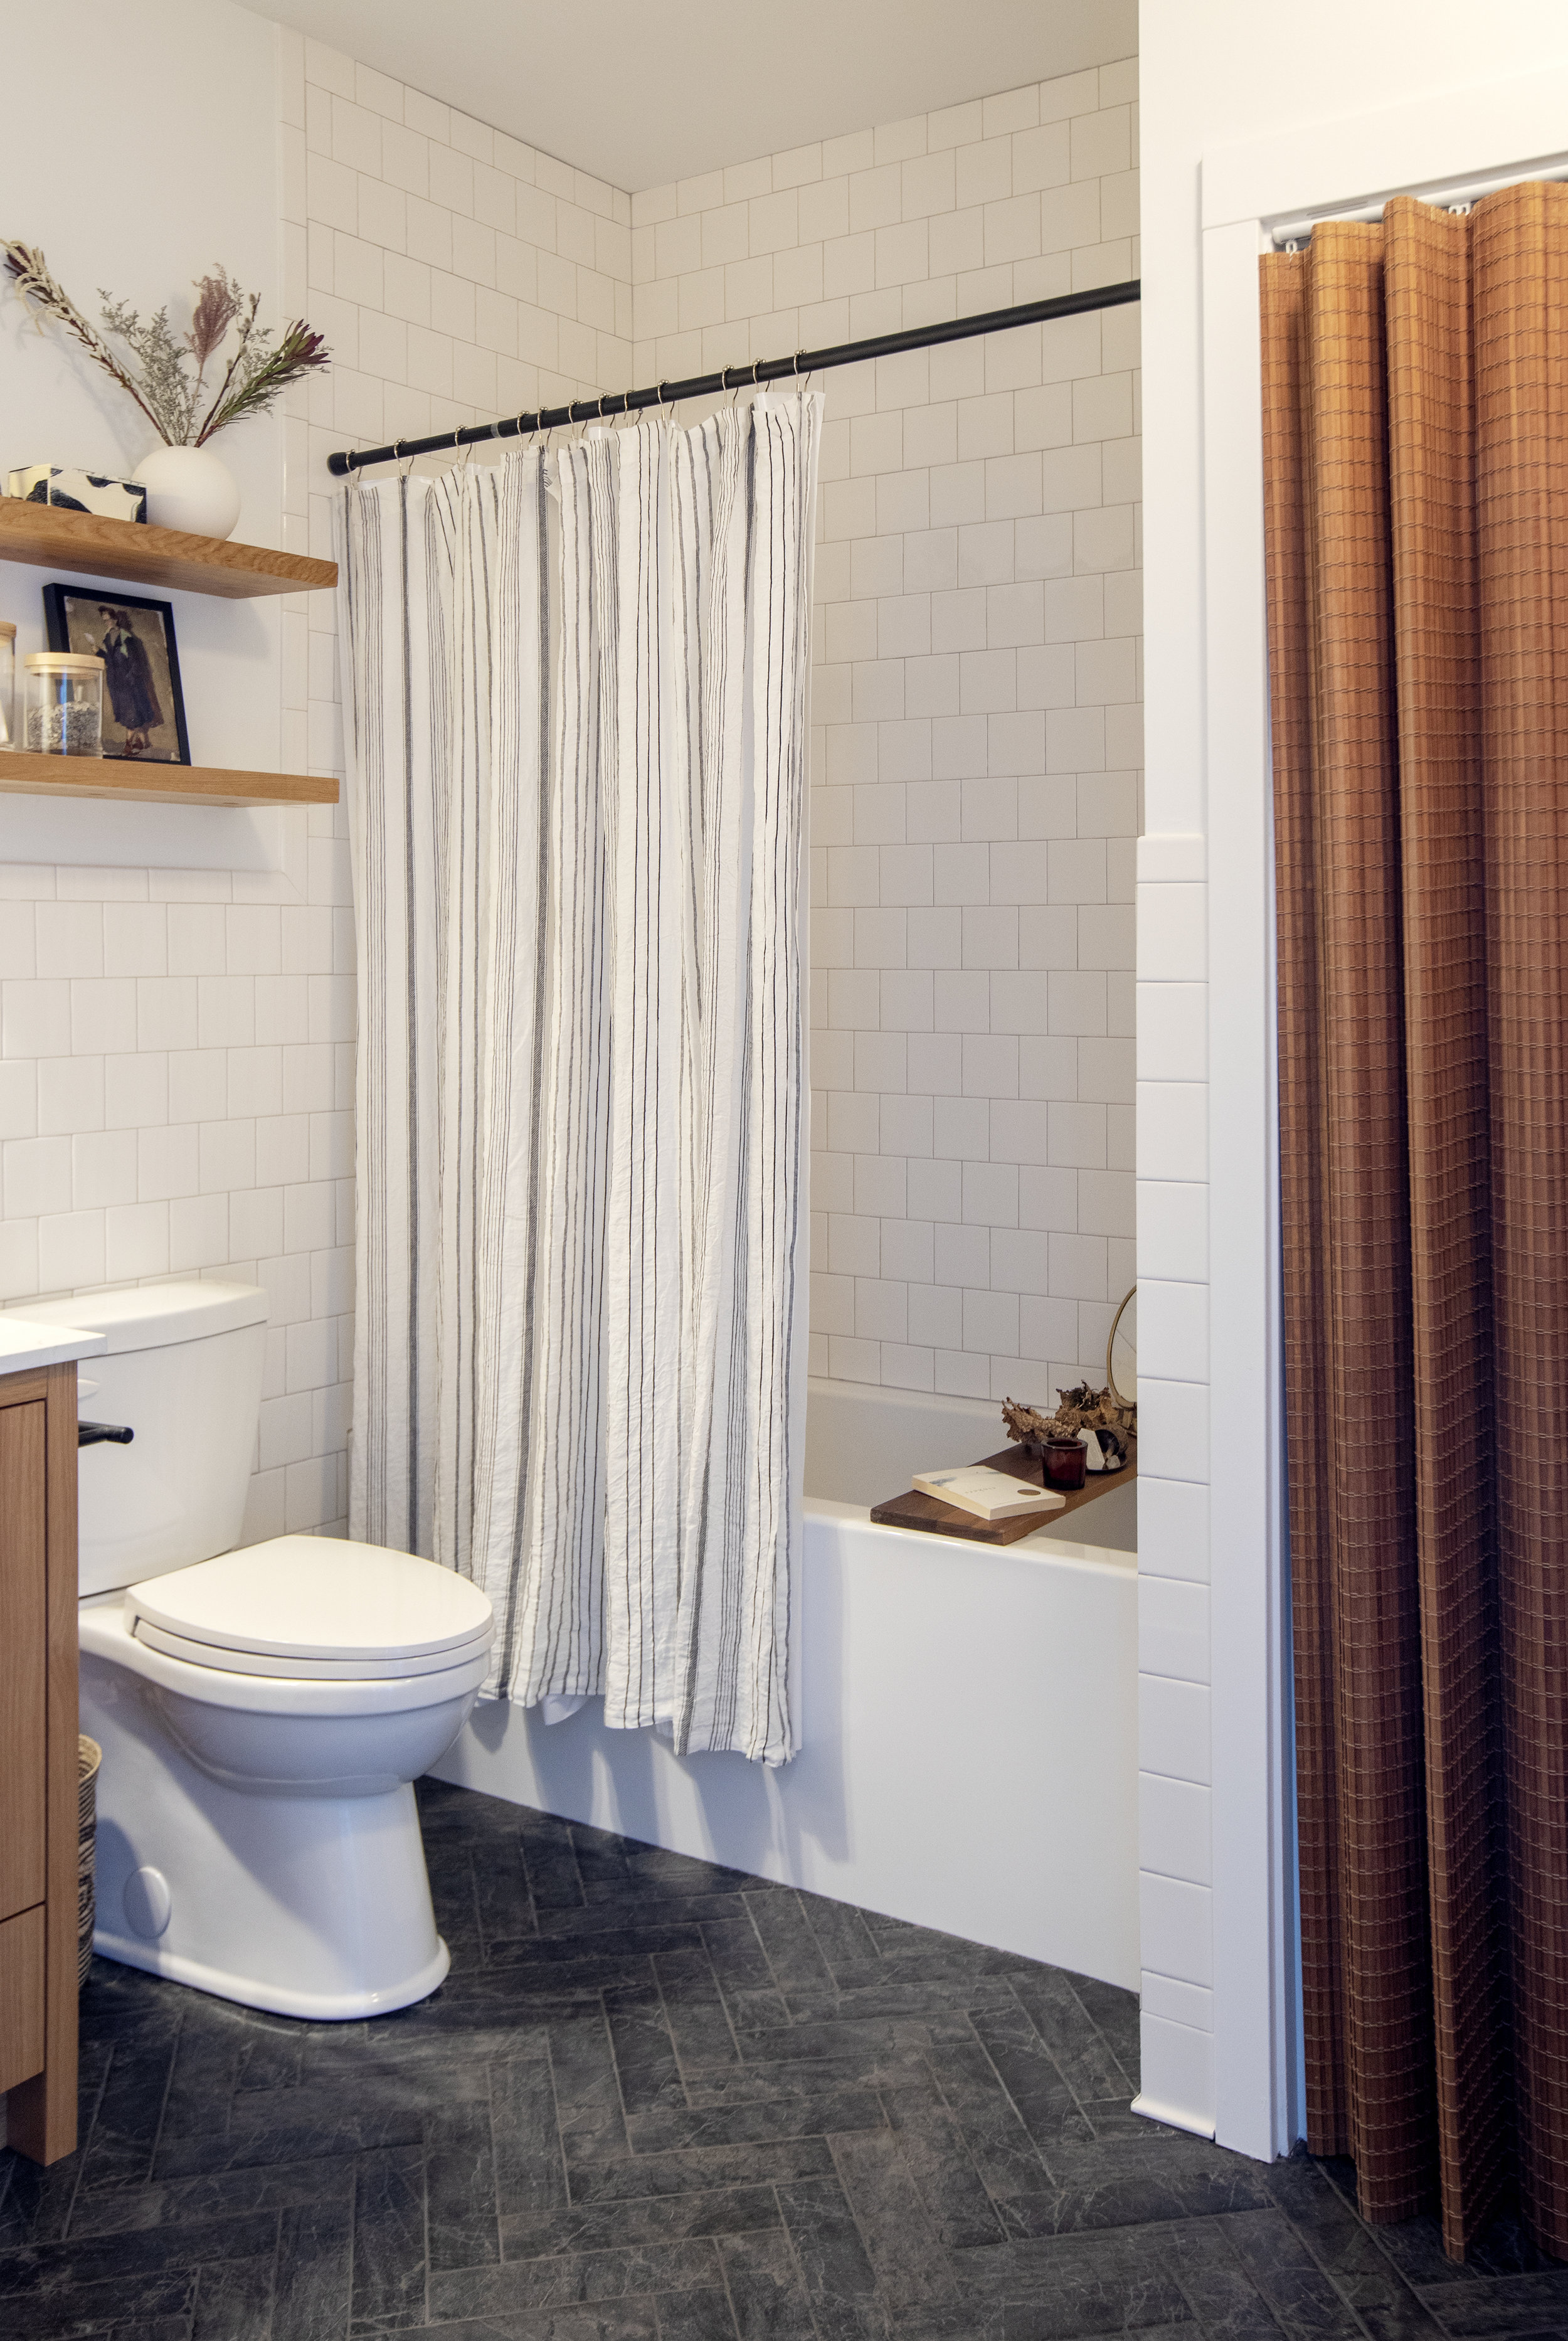 The bathroom at Prince Edward Street has beautiful white square tiles and dark tiled floors; a white and grey shower curtain hangs above the built in tub.